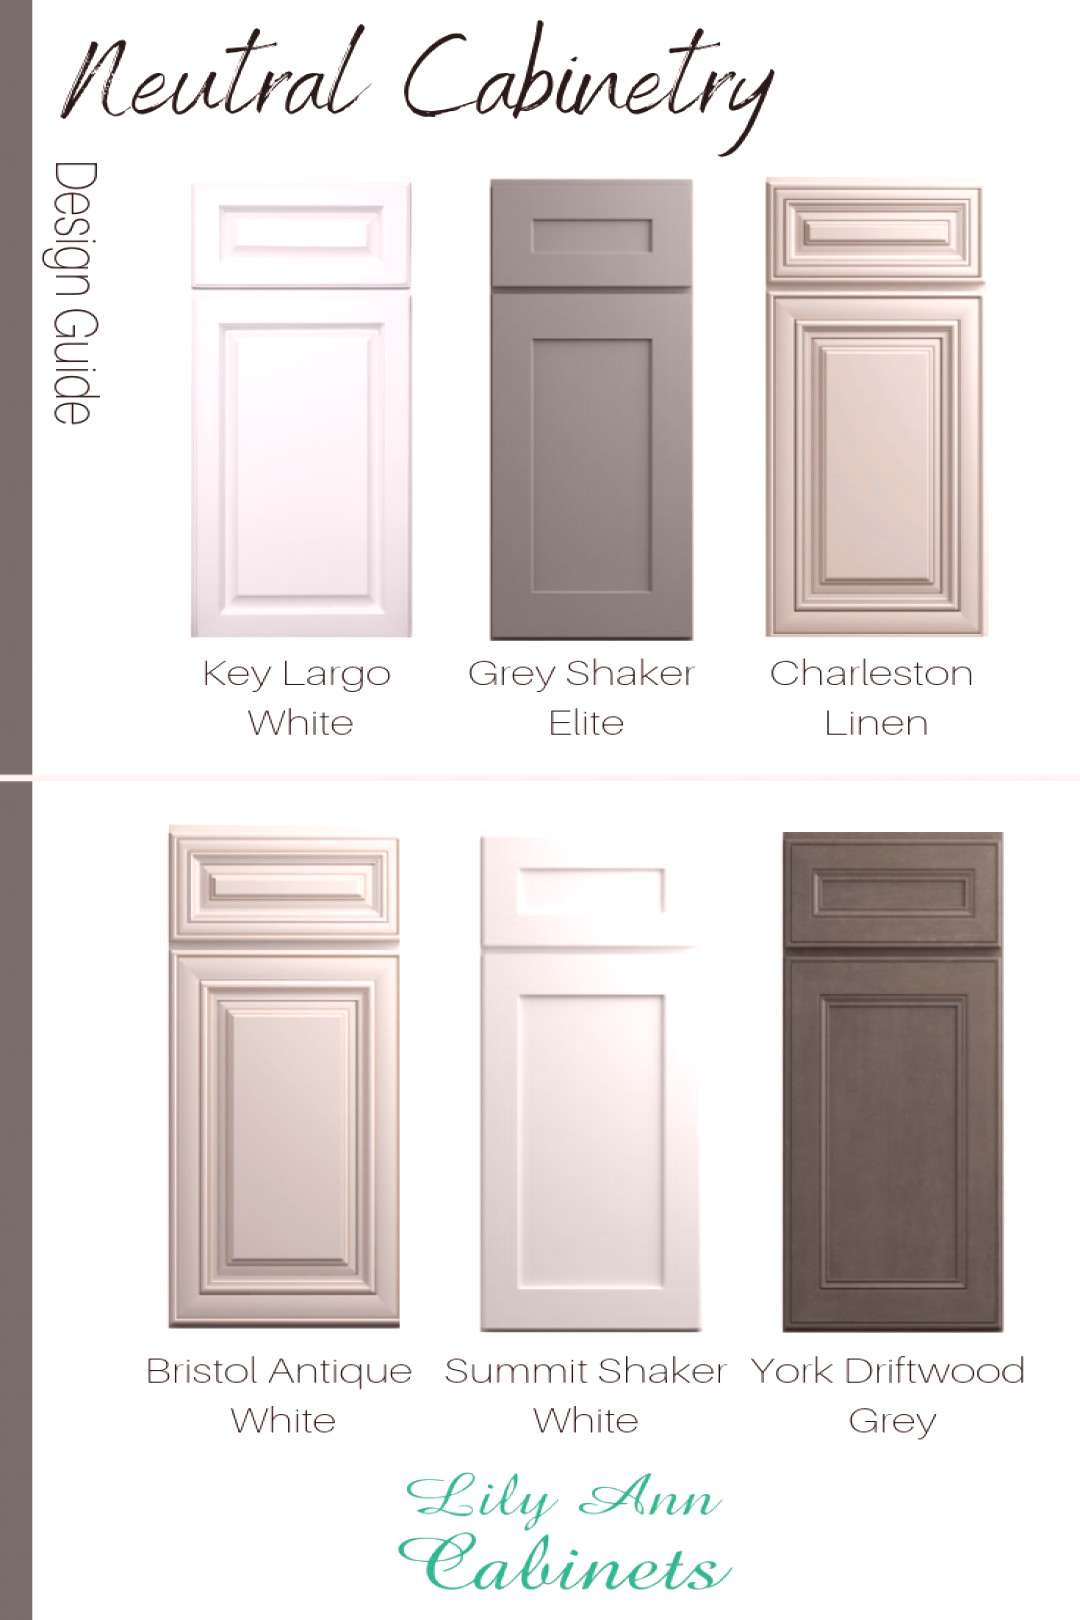 Shop Neutral Cabinetry at Lily Ann Cabinets + Get 50% Off Box Store Prices! Shop Neutral Cabinet Co